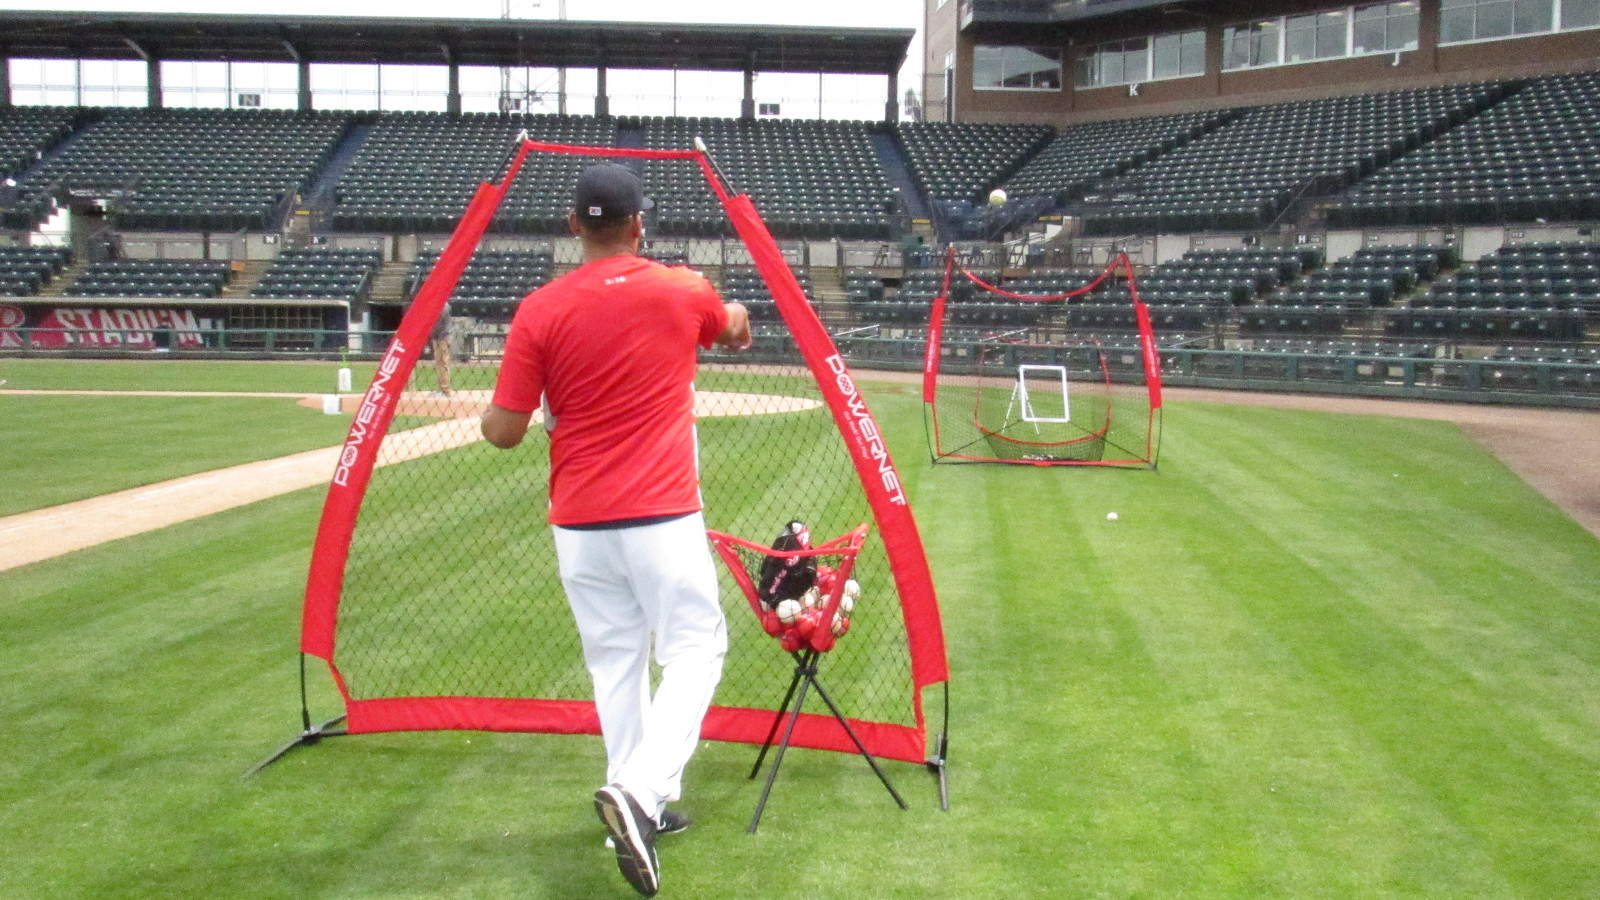 PowerNet 1002 A-Frame Portable Baseball Softball Pitching Screen ...